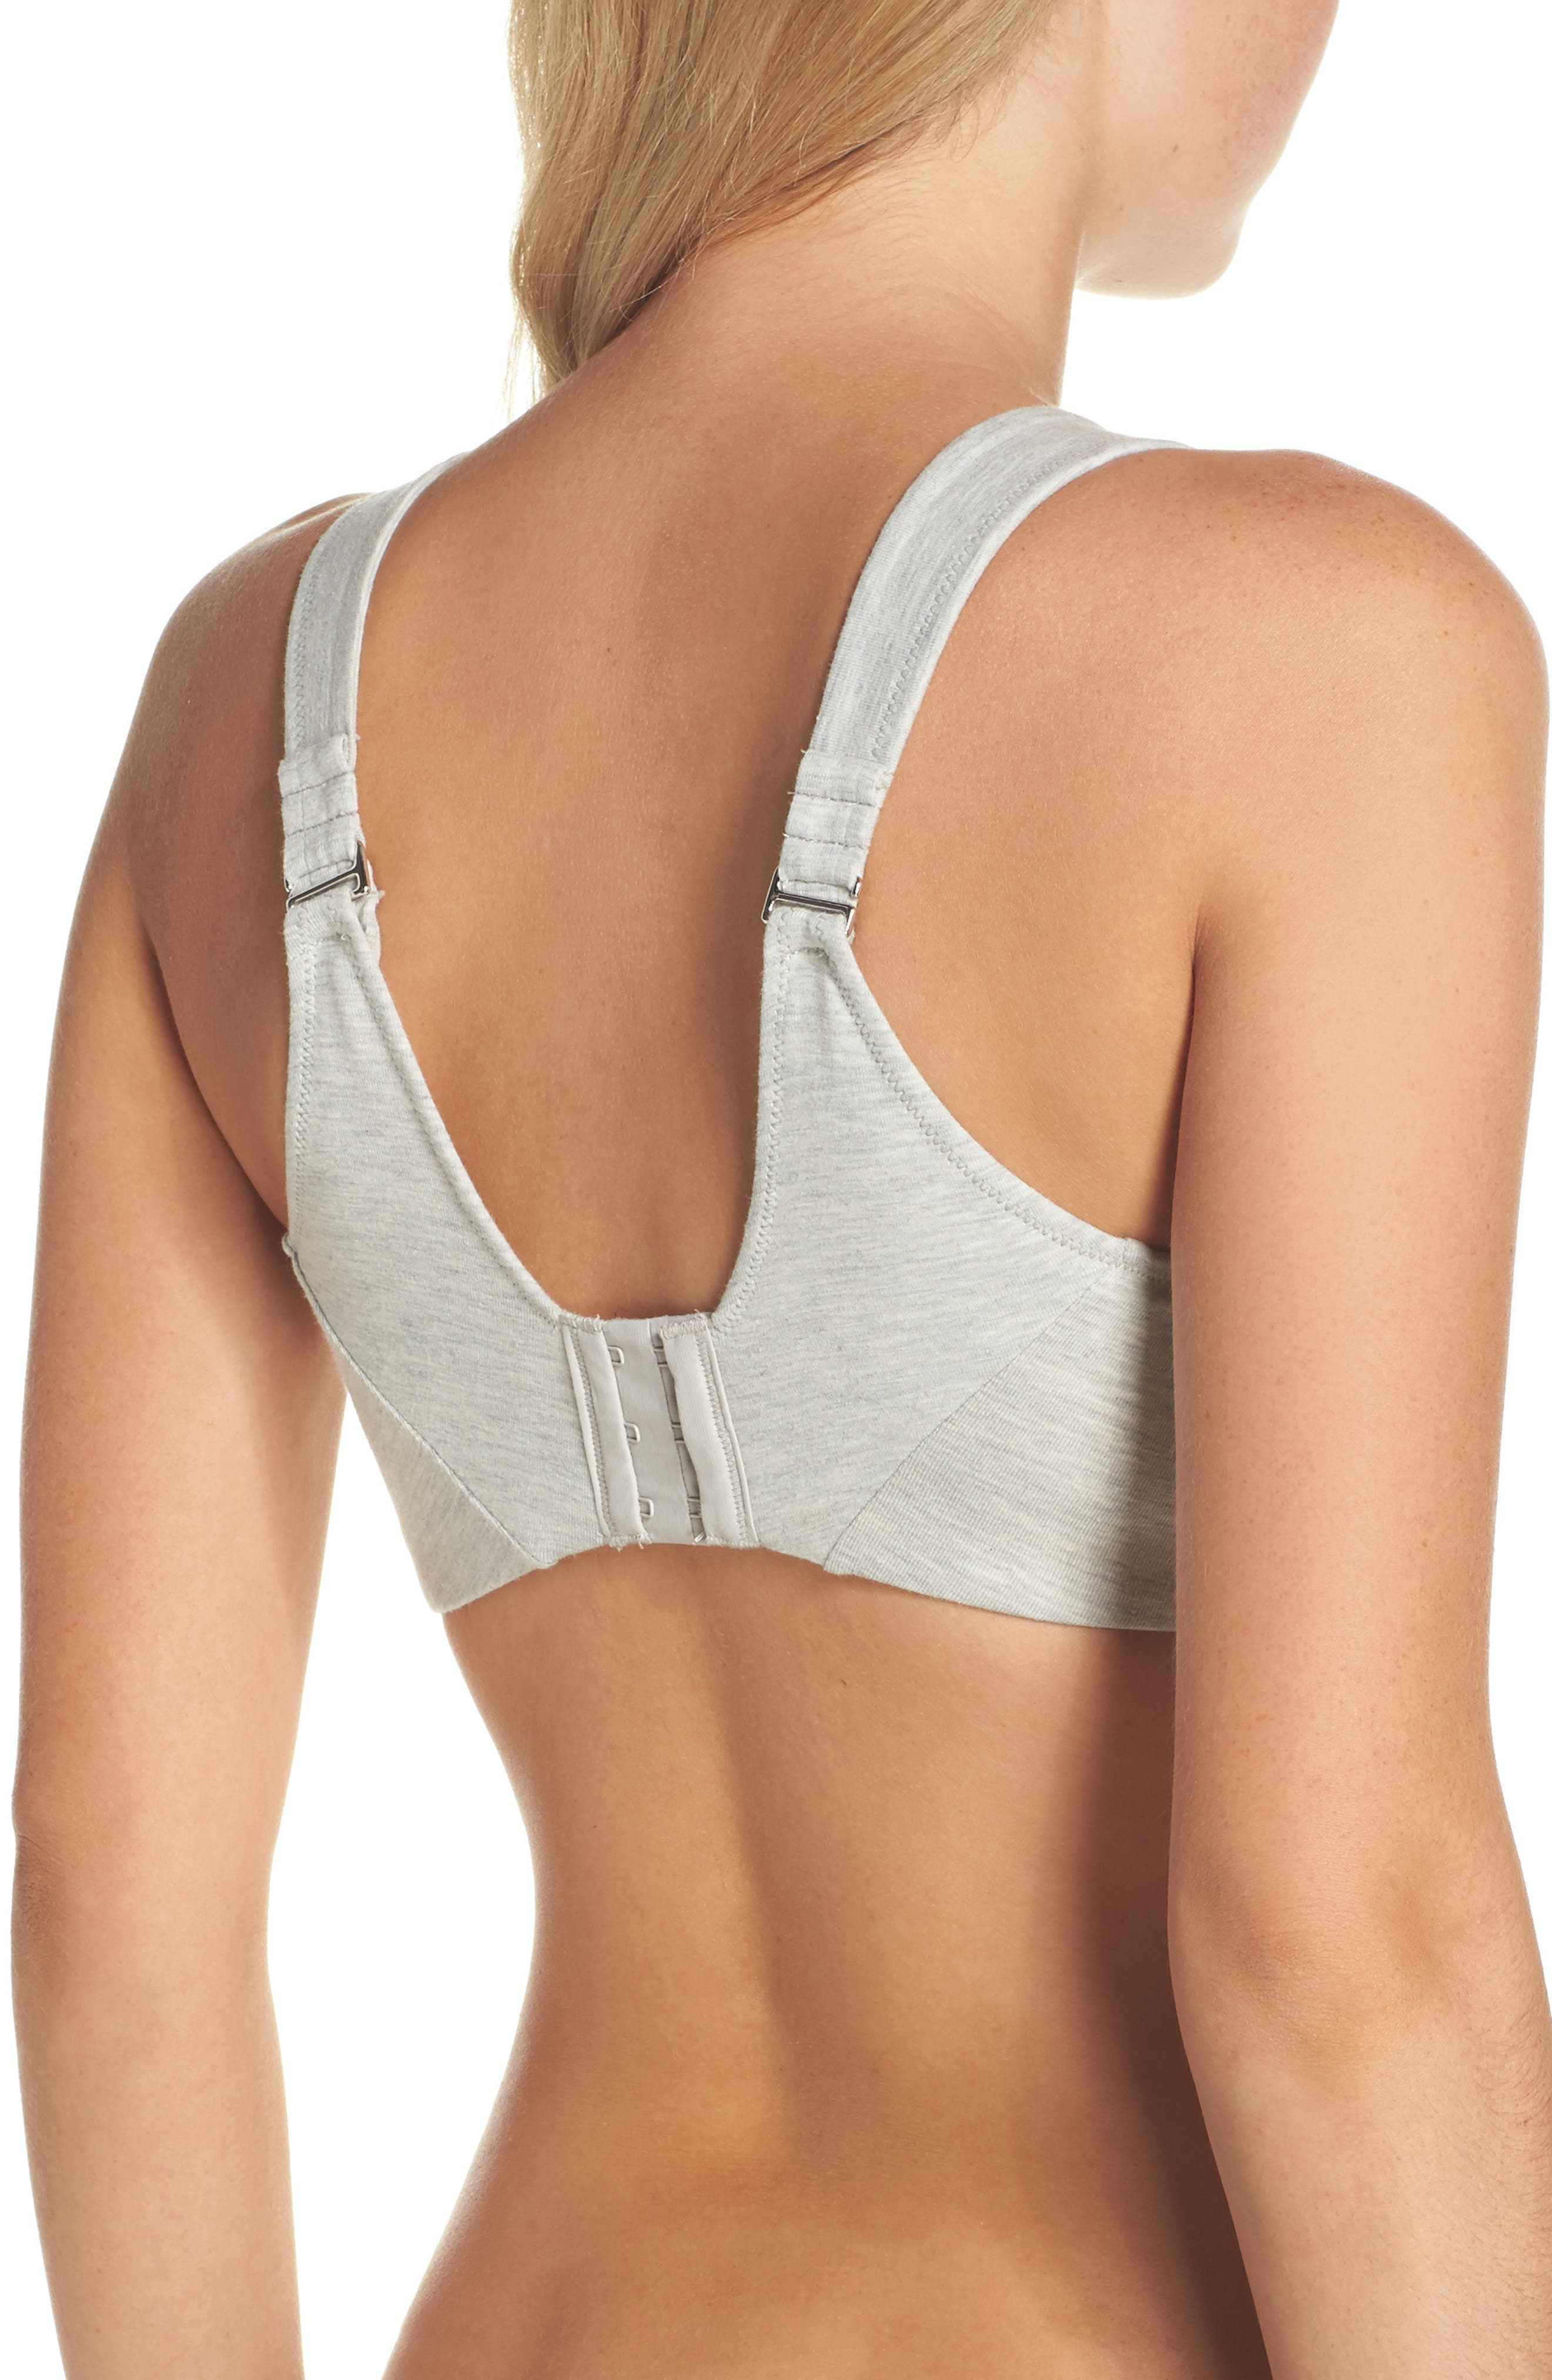 Underwire Sports Bra,                             Alternate thumbnail 2, color,                             Heather Grey